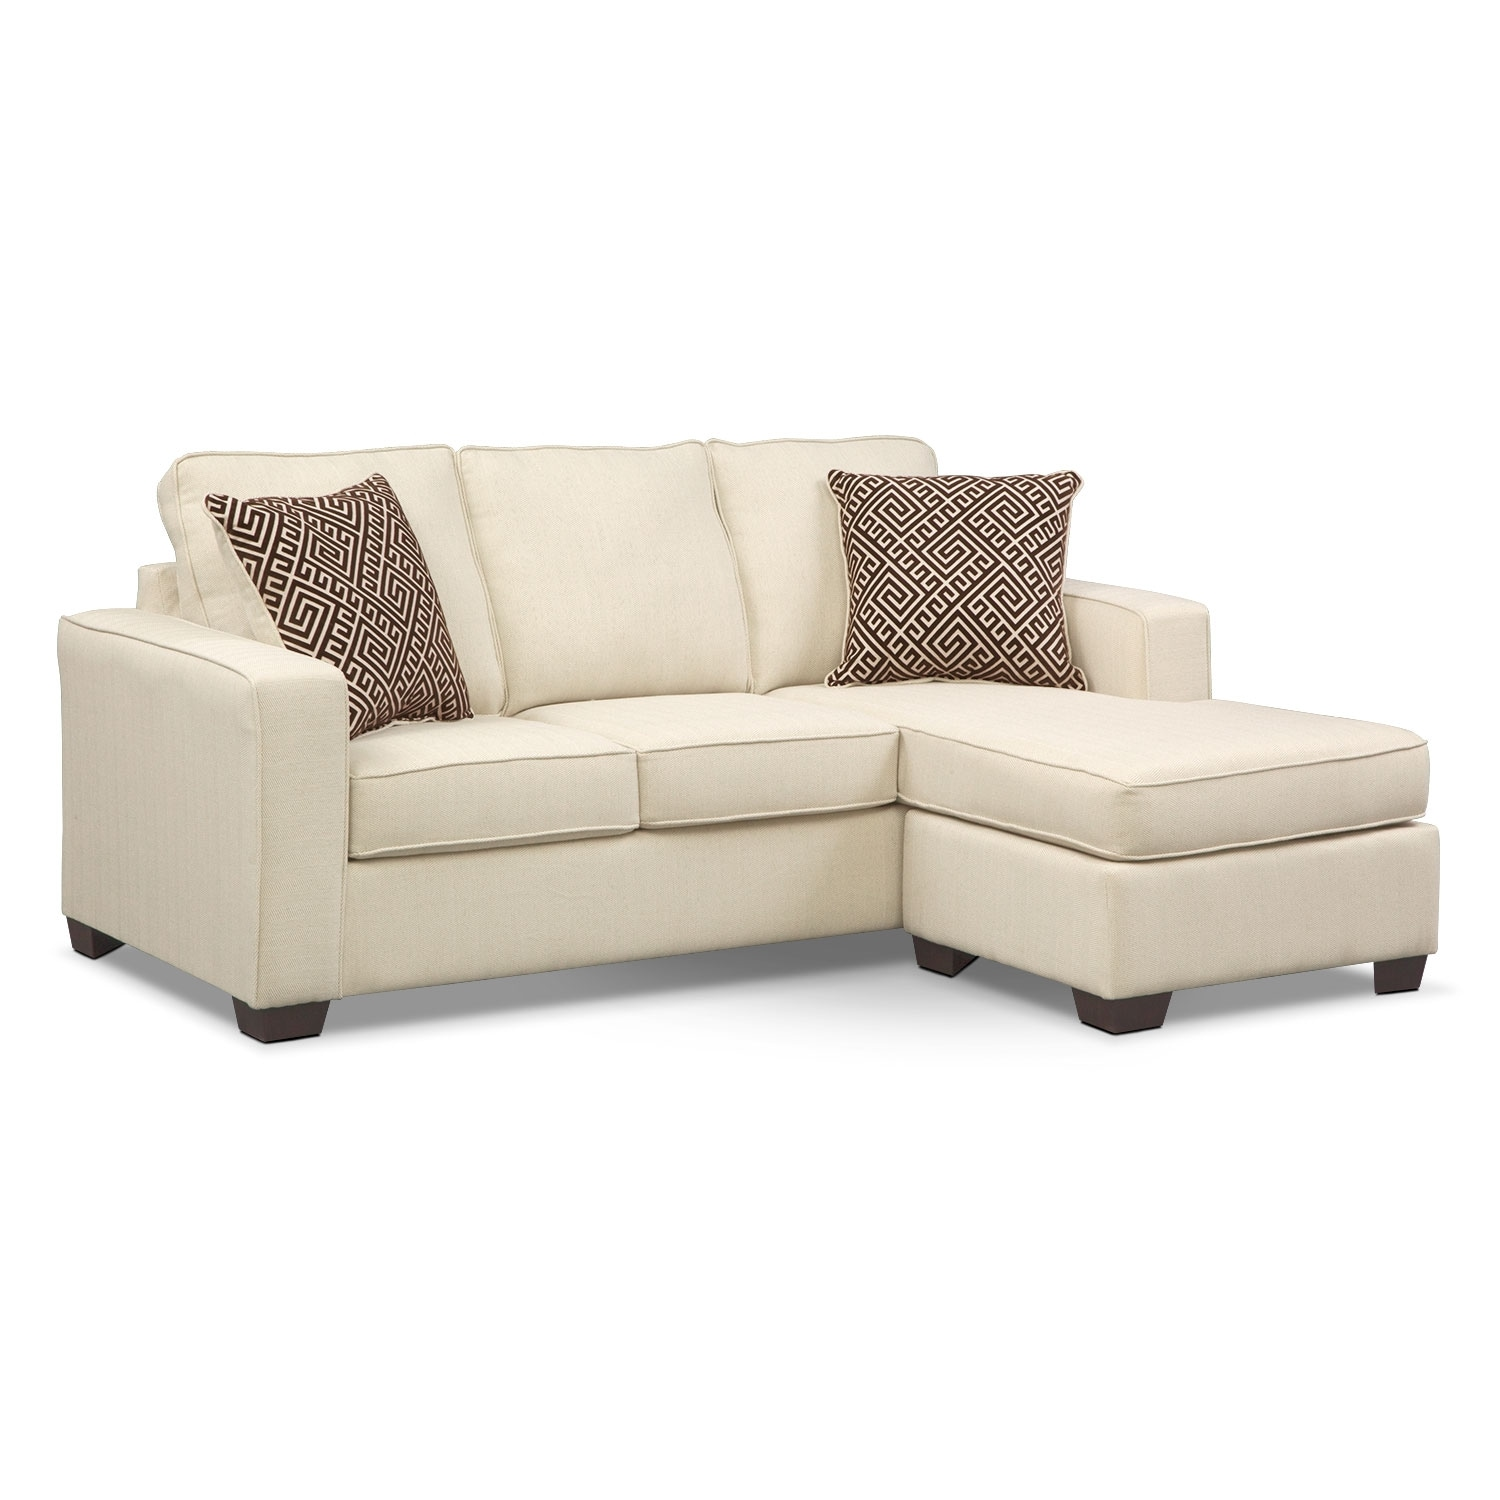 Sterling beige queen memory foam sleeper sofa w chaise for Chaise and sofa